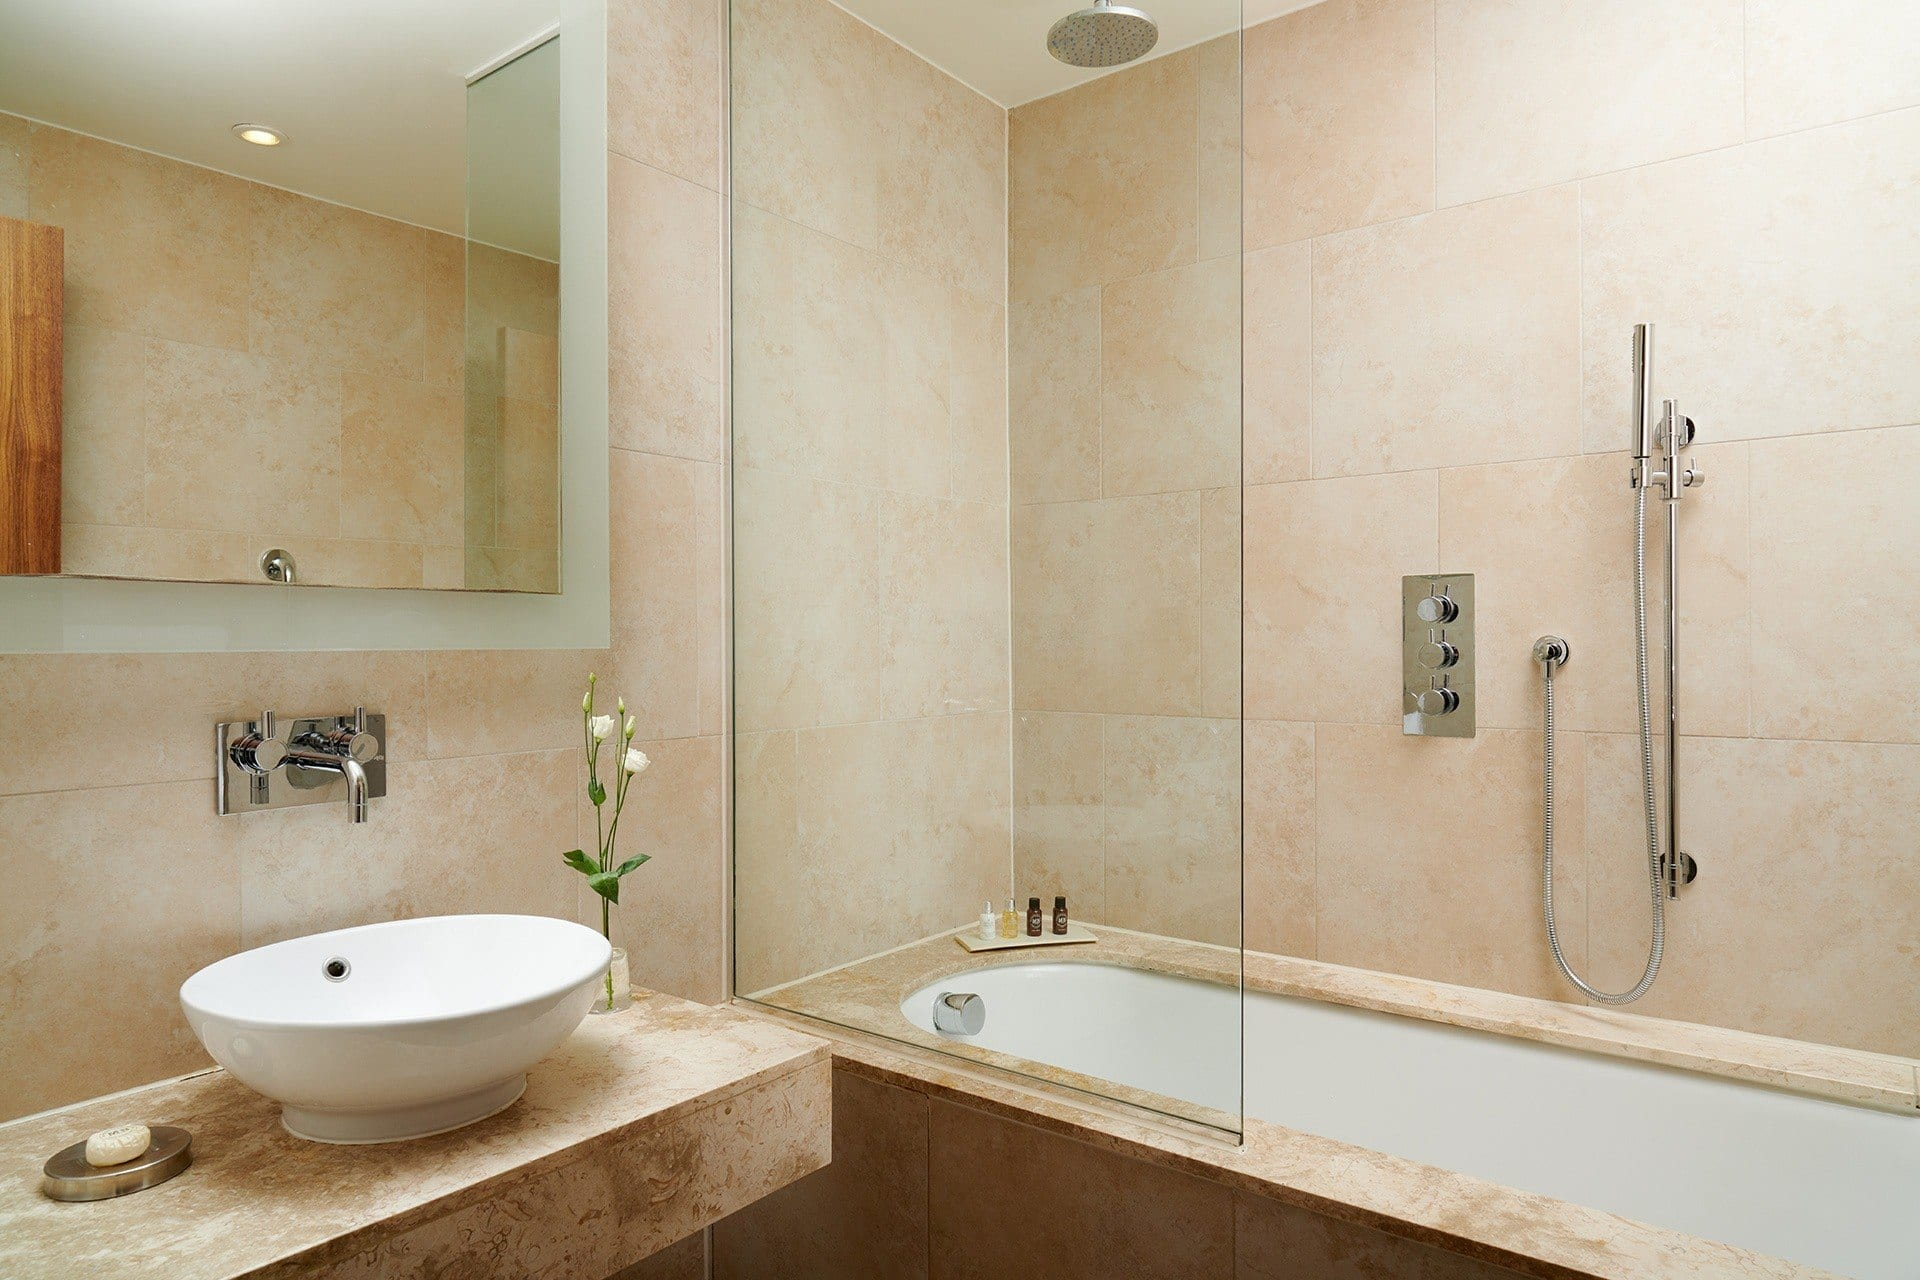 The Grand Executive Bathroom